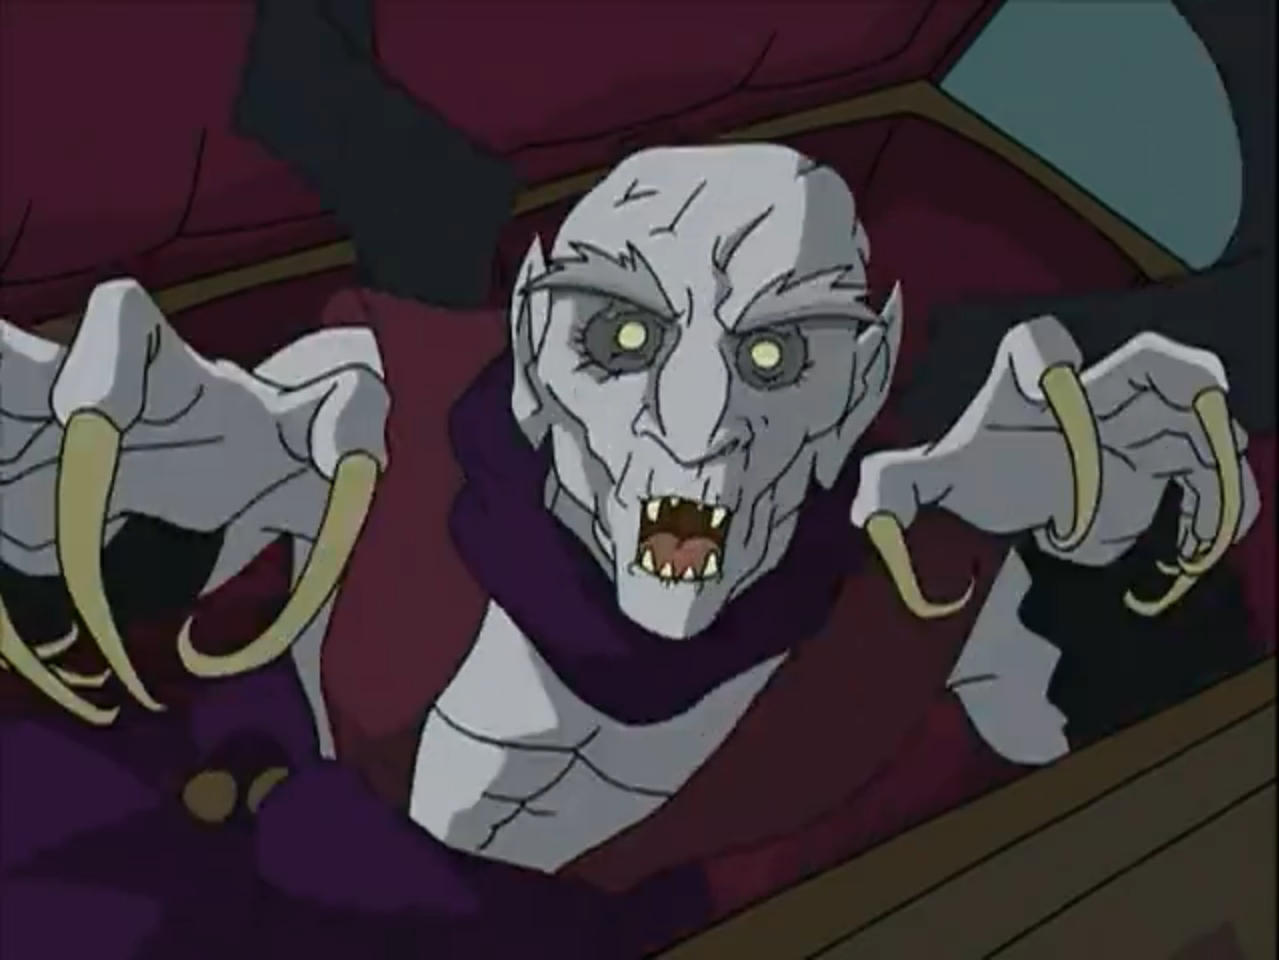 jackie chan adventures minor villains characters tv